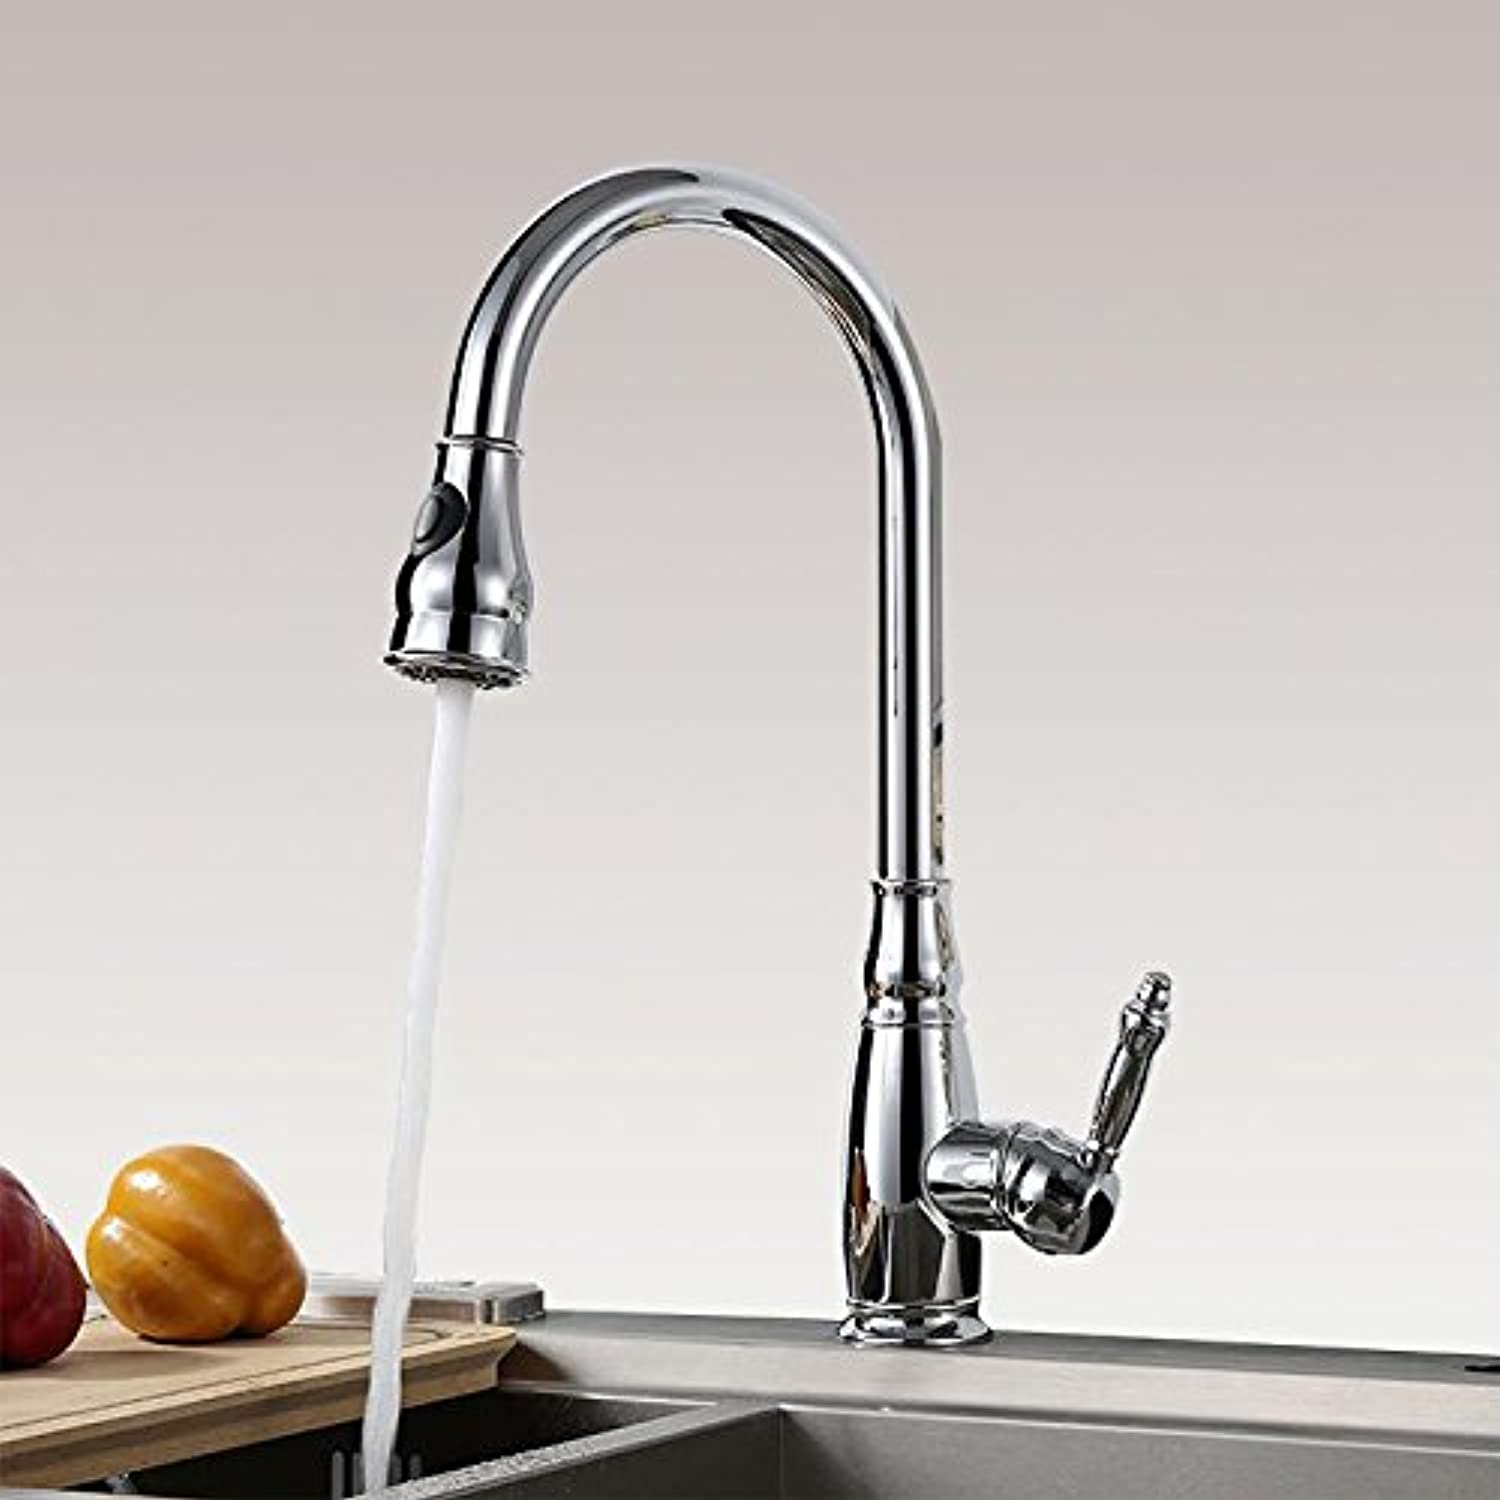 Tw Pull-out 360 ?? Swivel Kitchen Faucet   Vegetable Basin Sink Hot and Cold Kitchen Faucet (Dual Mode Water Mode)